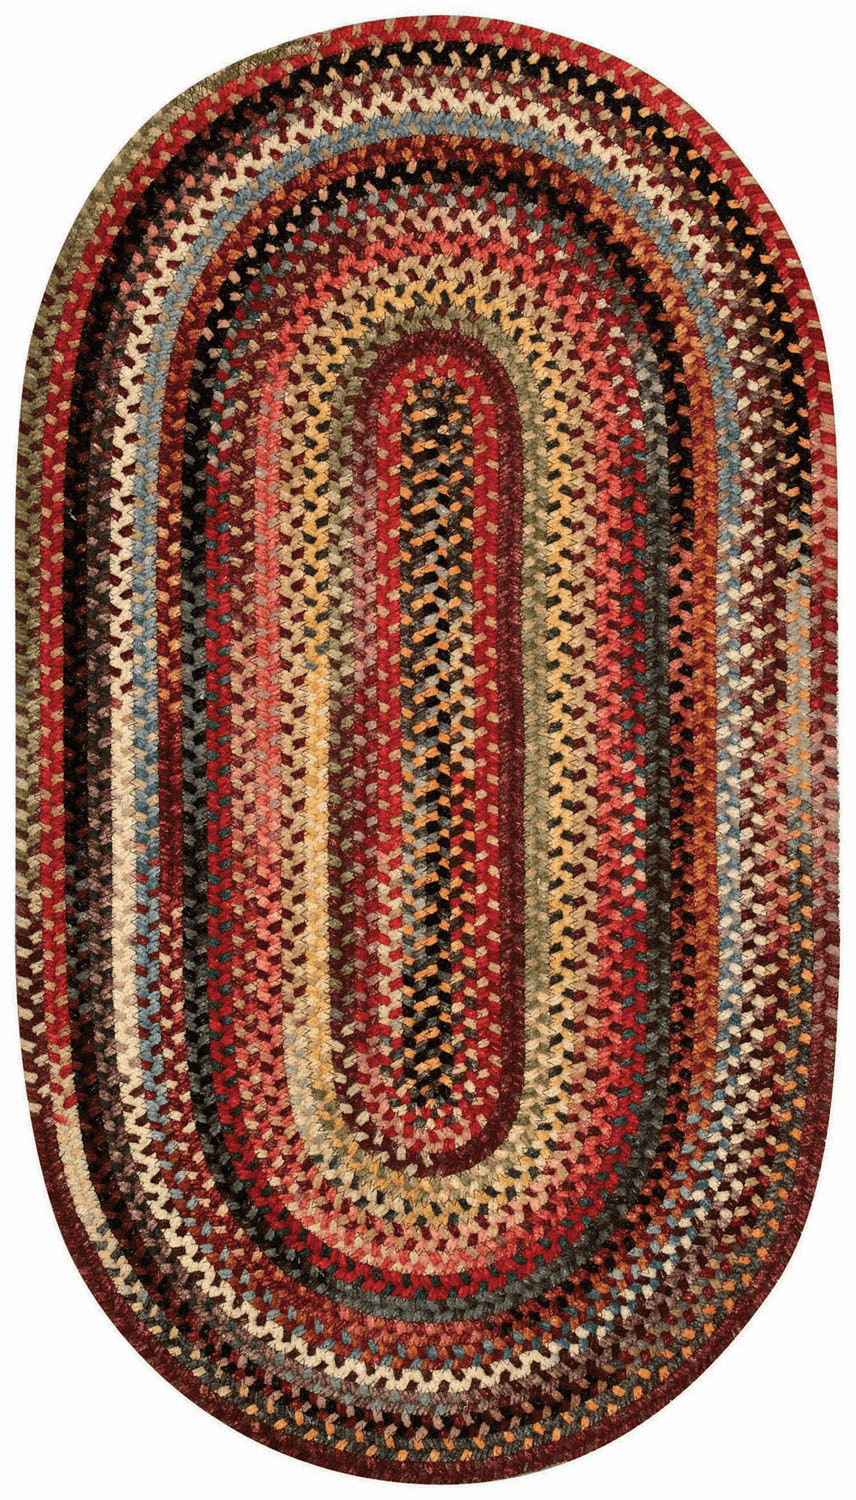 Hand-Braided Multicolor Rug